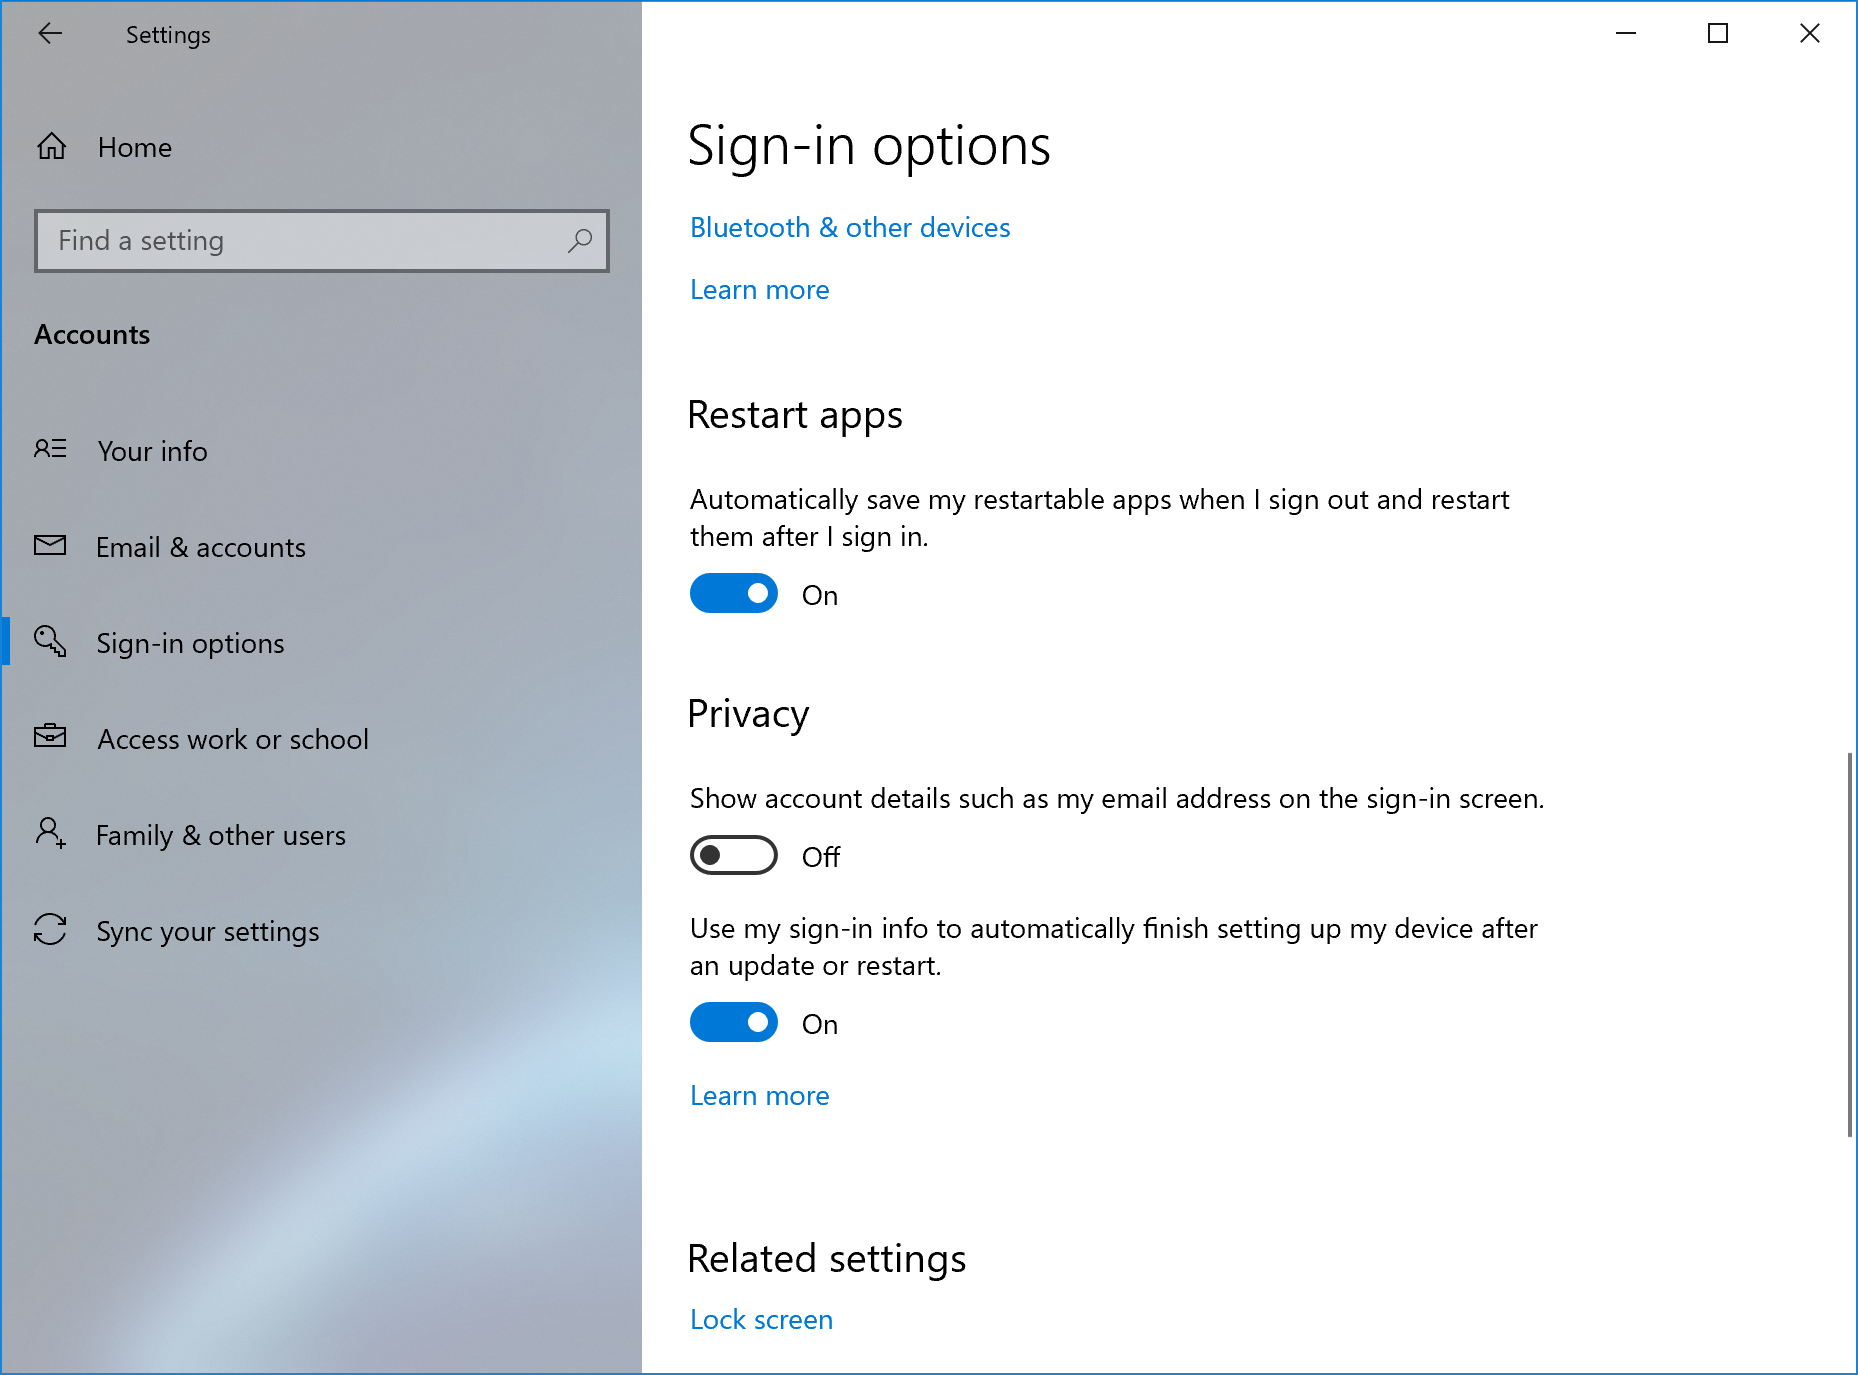 What's new in the Windows 10 Insider Preview Builds (20H1